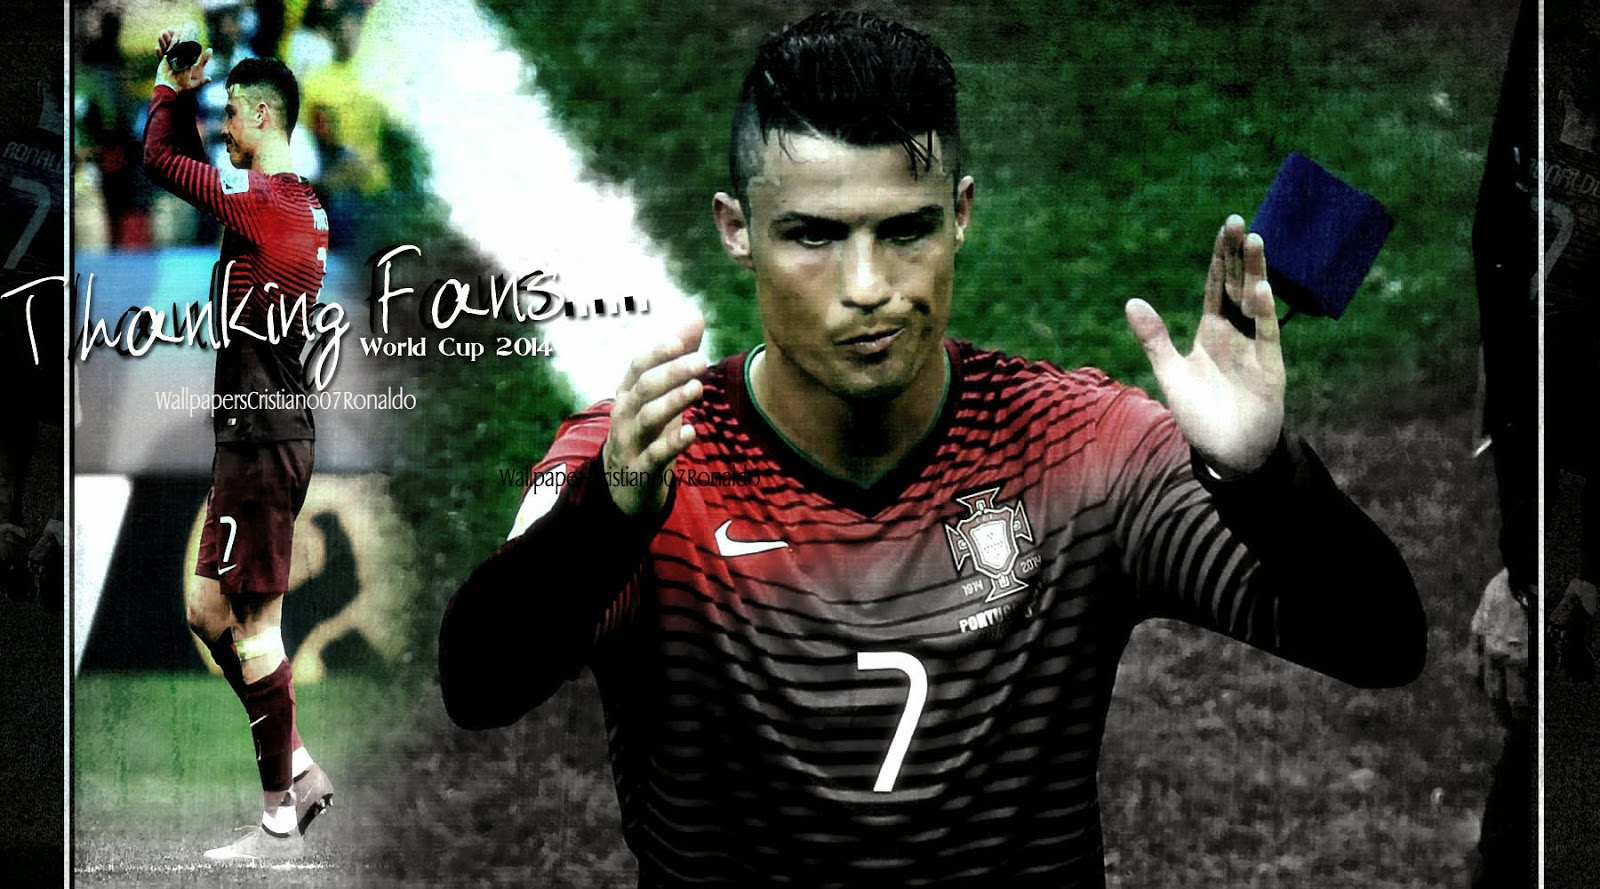 Portugal World Cup 2014 Wallpaper hd World Cup 2014 Portugal